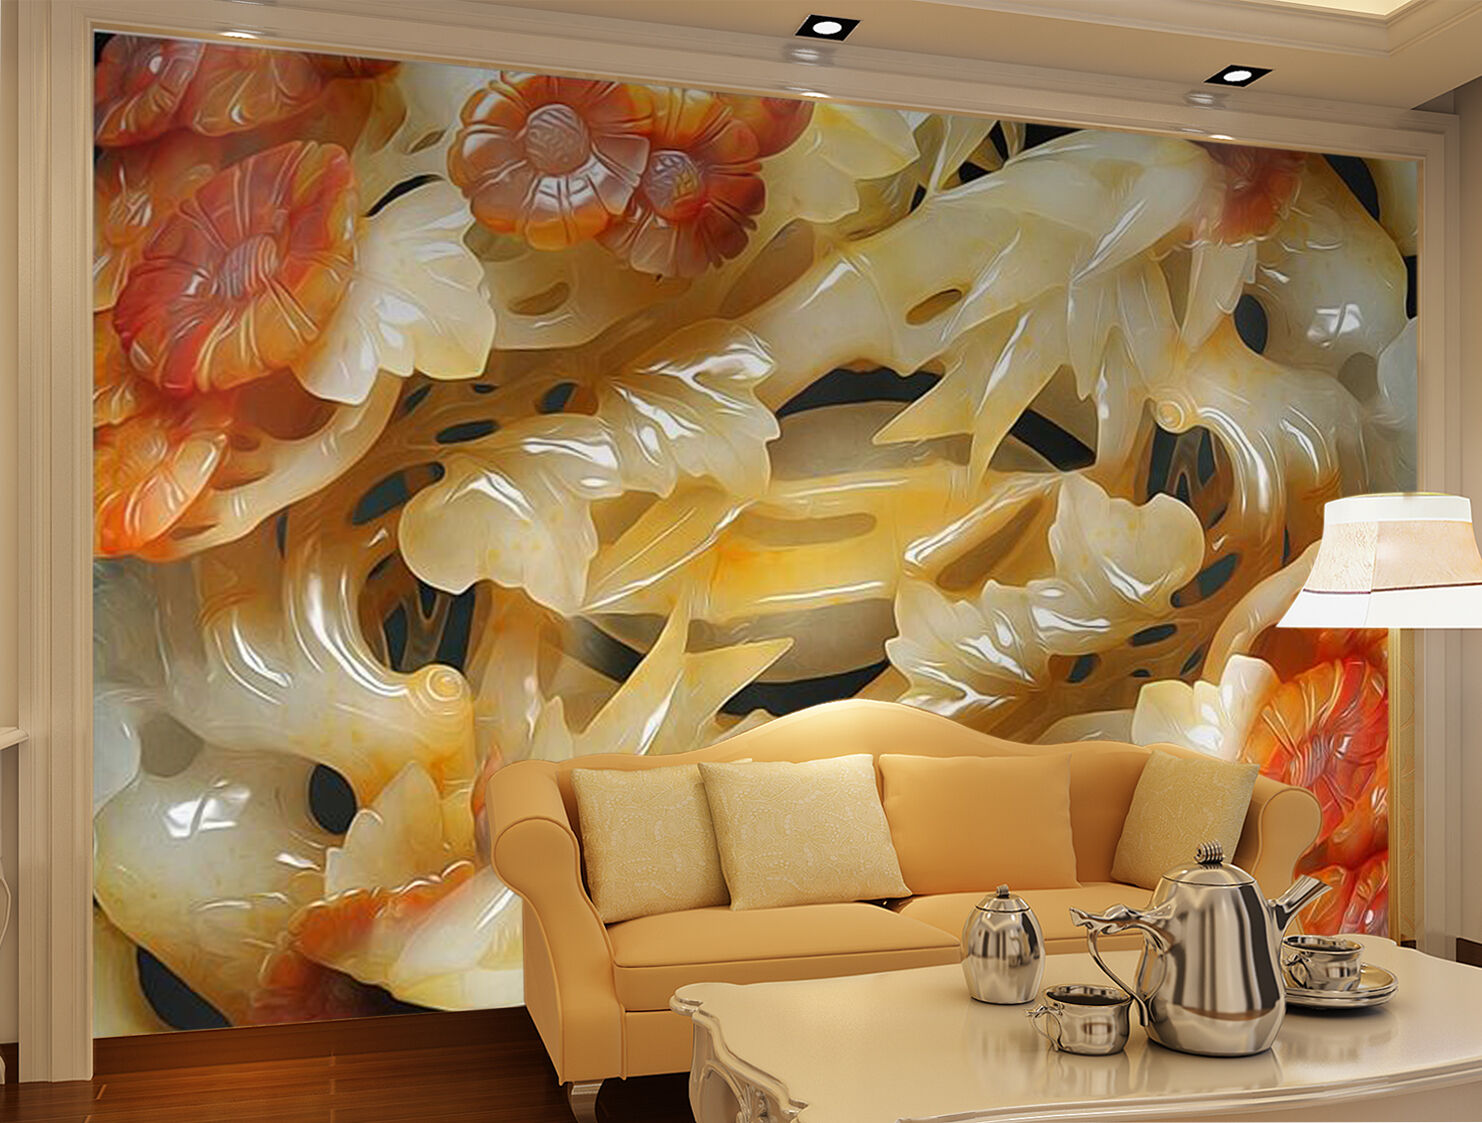 3D Jade carving 2311 Wall Paper Wall Print Decal Wall Deco Indoor Wall Murals